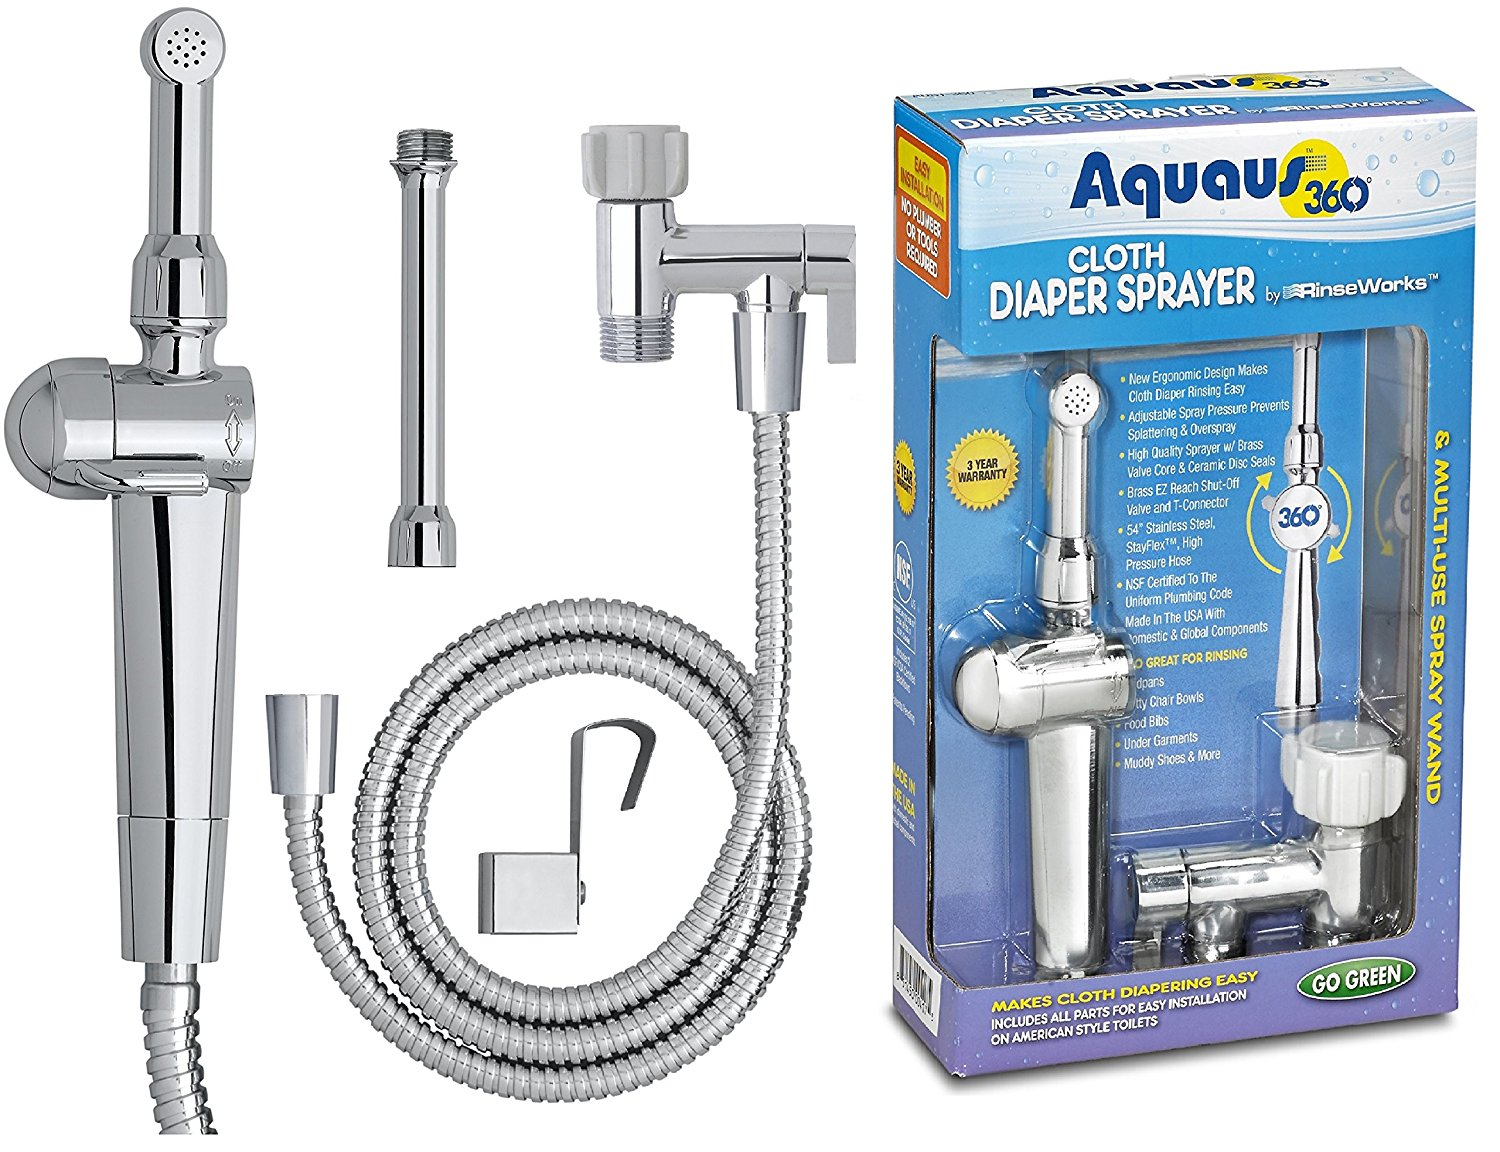 RinseWorks Aquaus 360 Diaper Sprayer